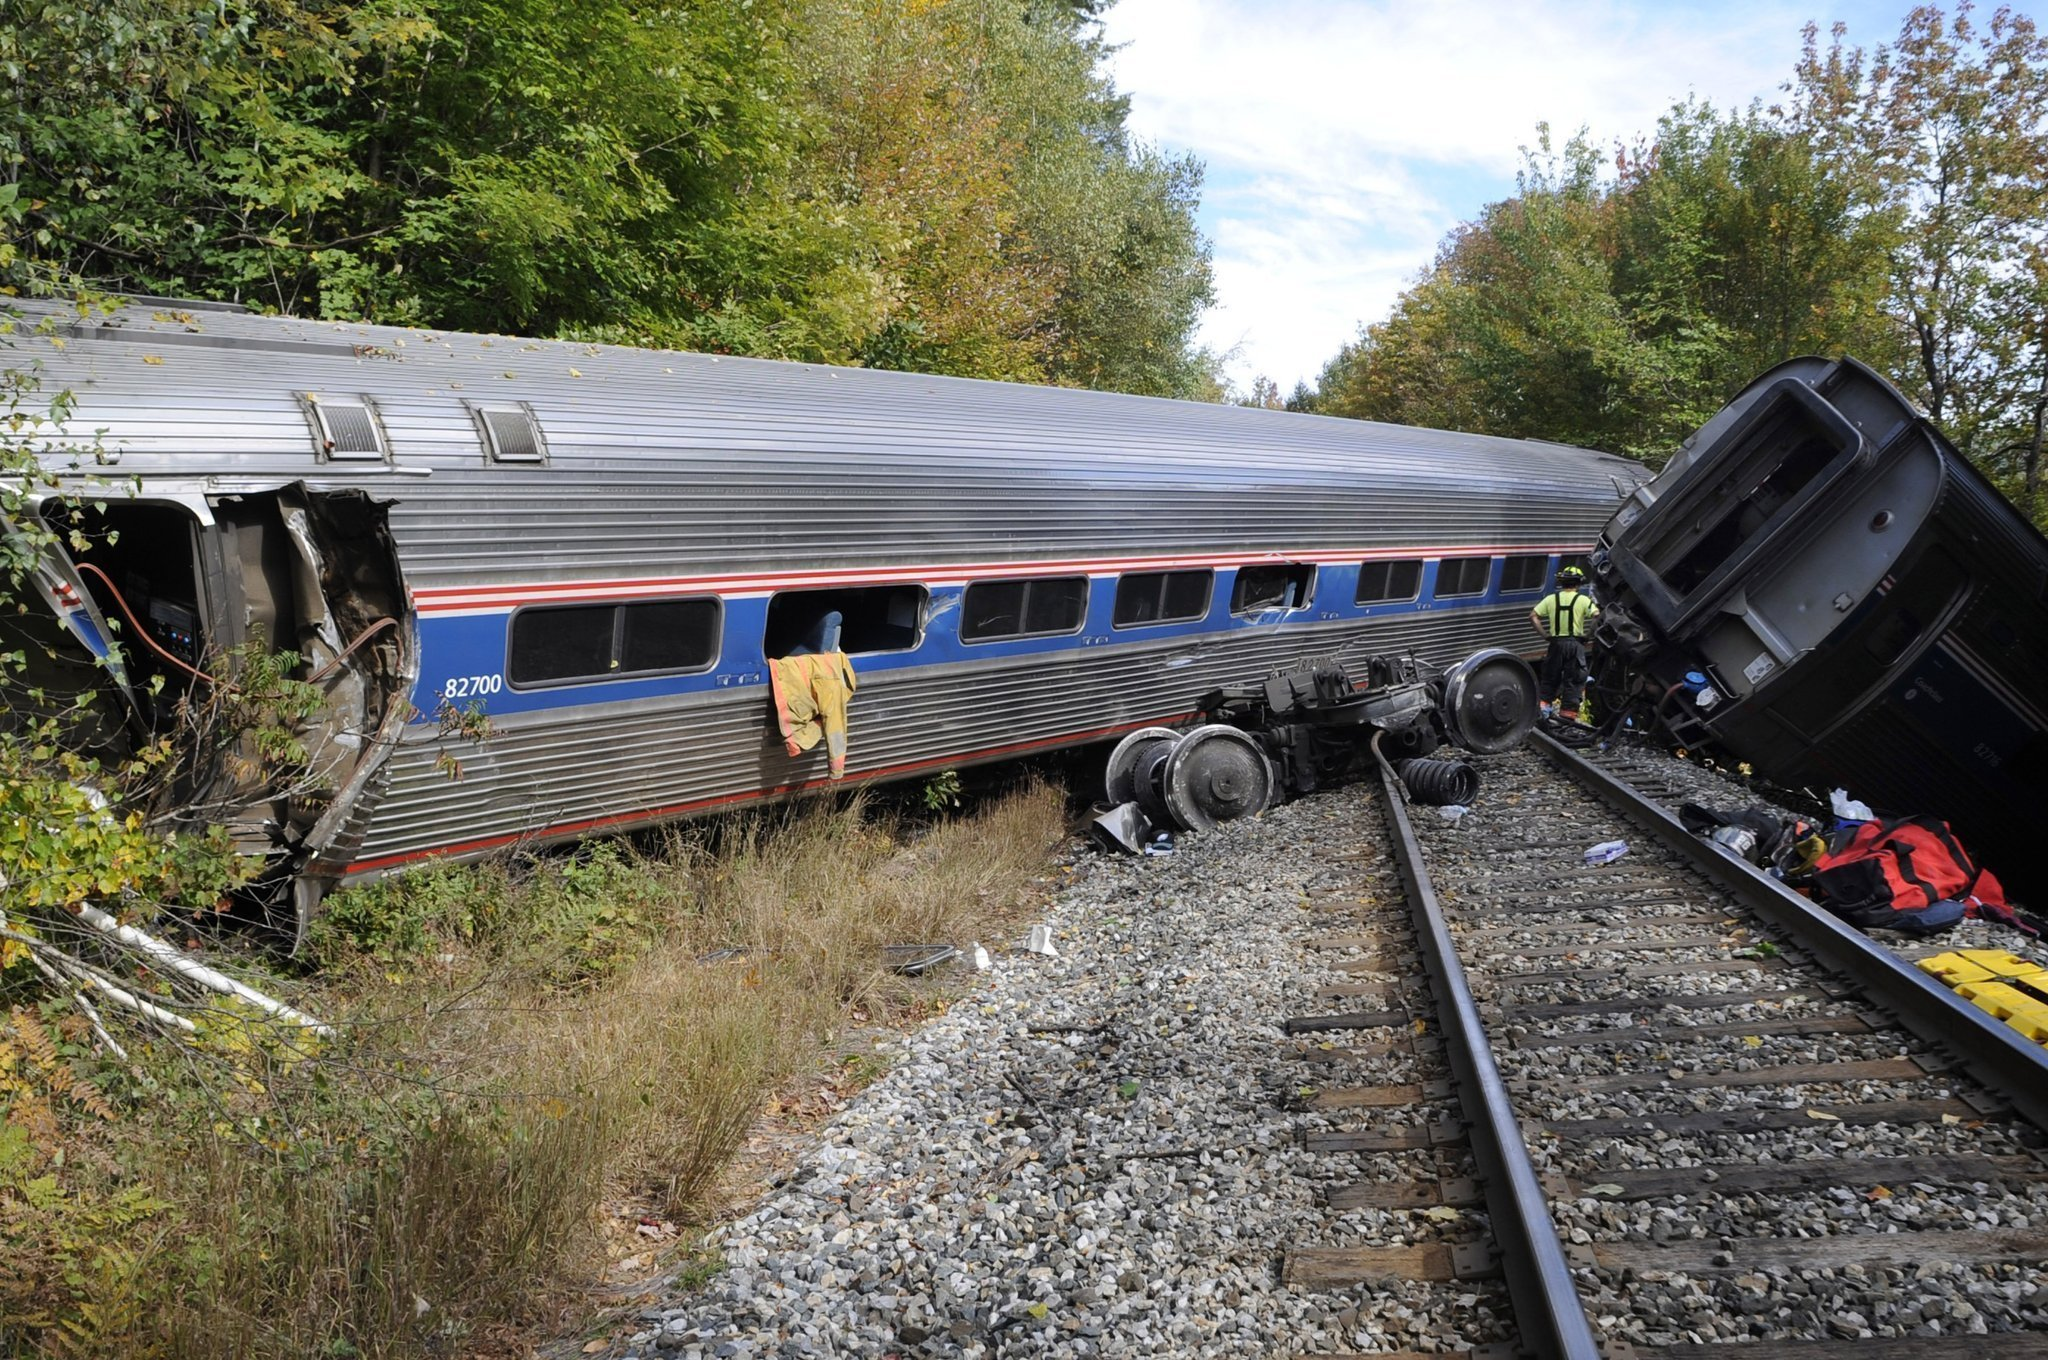 amtrak silver star route map with Ct Amtrak Train Derails Vermont 20151005 0 1902926 on 3492863694 as well Piedmont  train moreover Save 30 Percent On Coach Fares During The Amtrak Track Friday 2016 Sale as well Copy2 of portland Metropolitan Lounge in addition Chachi Gonzales.